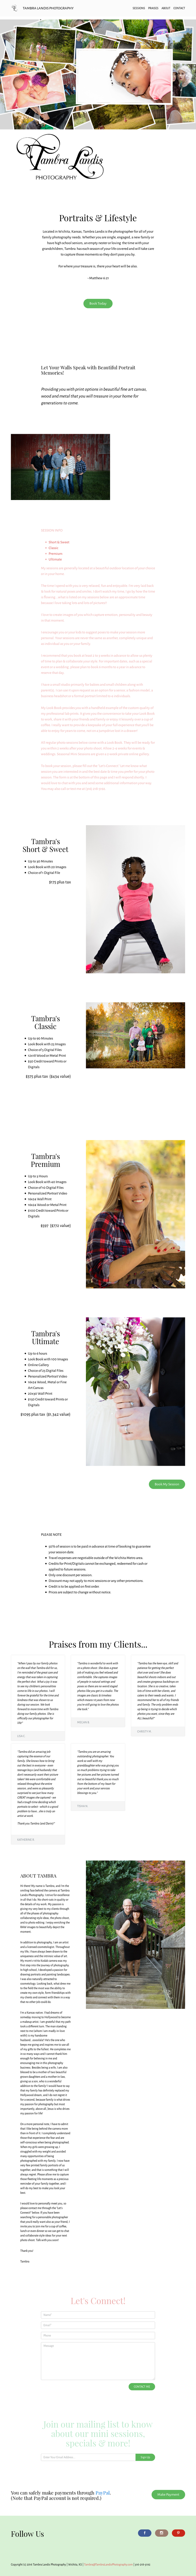 Tambra Landis Photography Competitors, Revenue and Employees